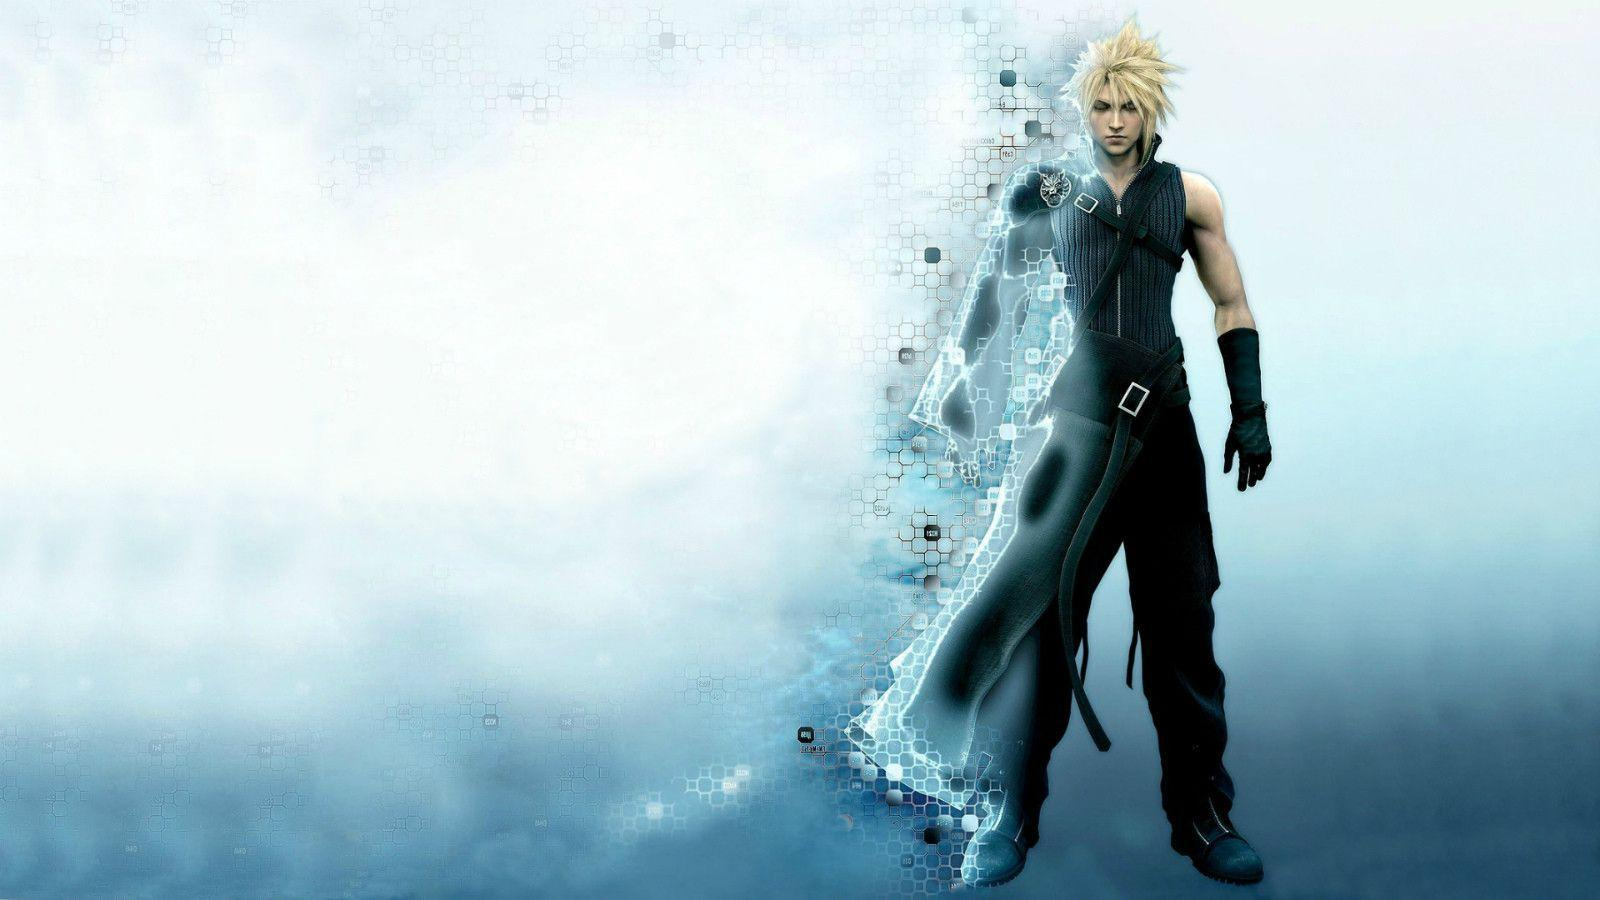 Final Fantasy 7 wallpapers Advent Children